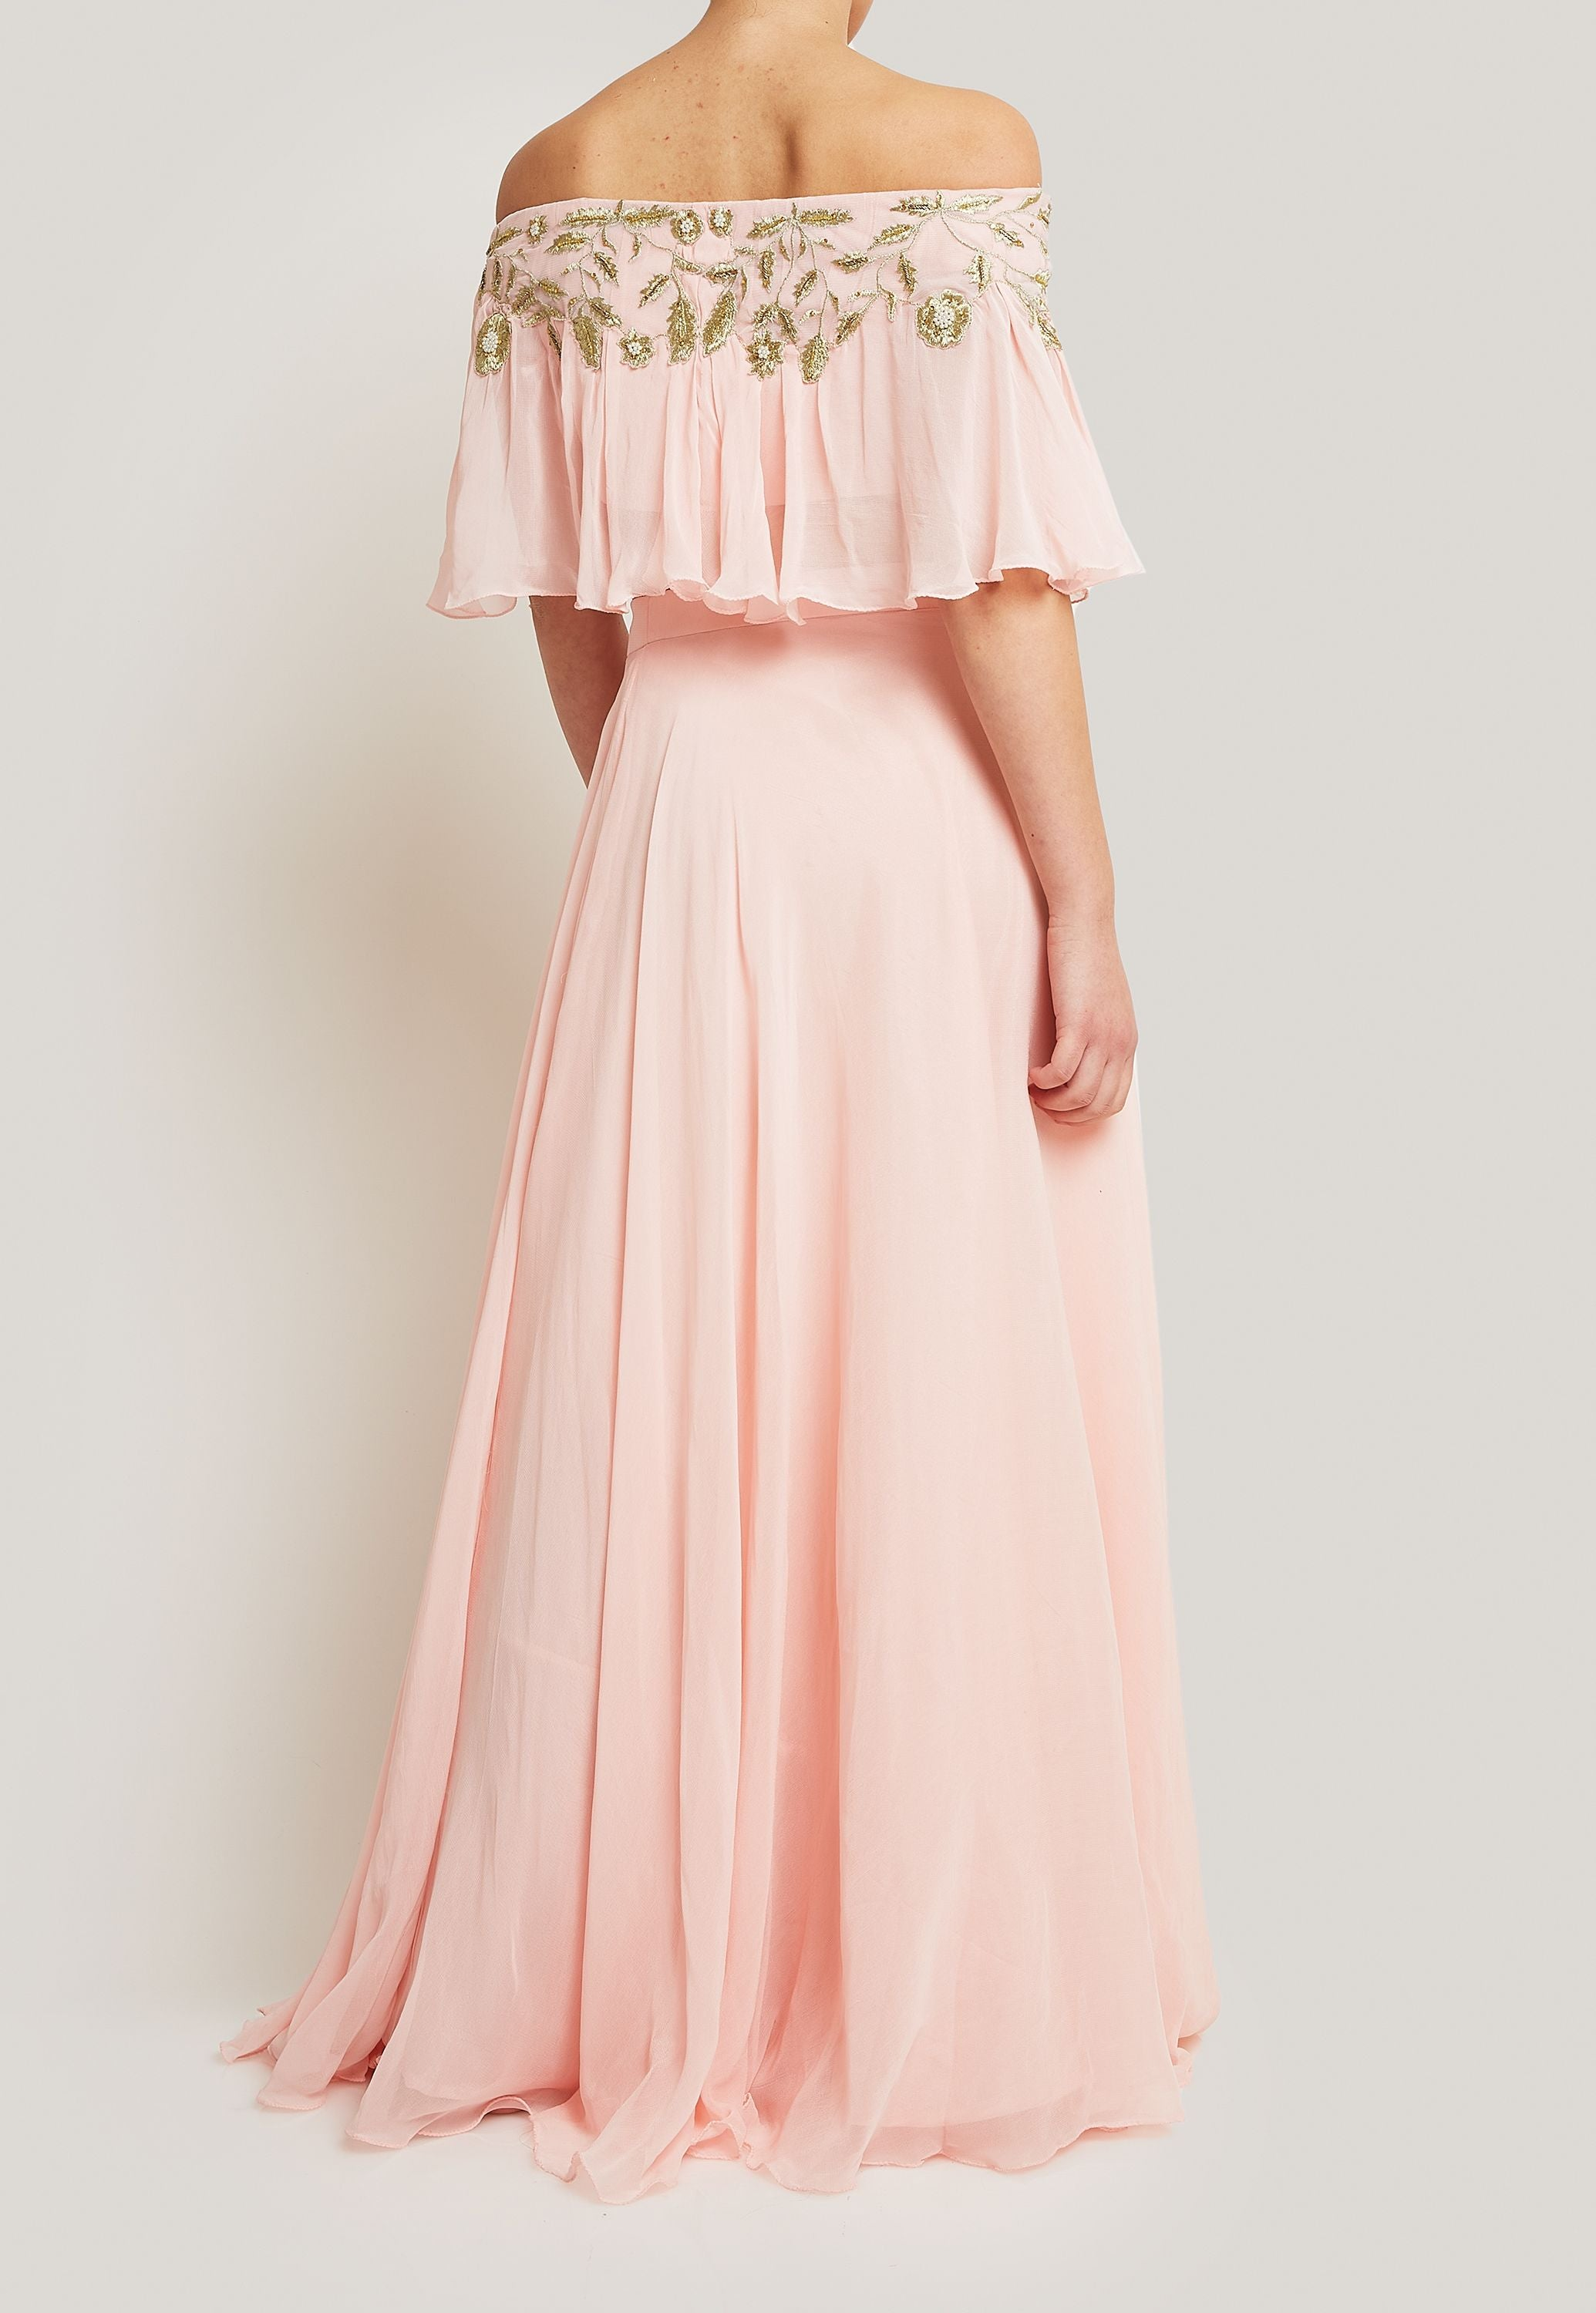 PINK FLOWY OFF SHOULDER EMBROIDERED CROP TOP PAIRED WITH A MATCHING FLOWY SKIRT